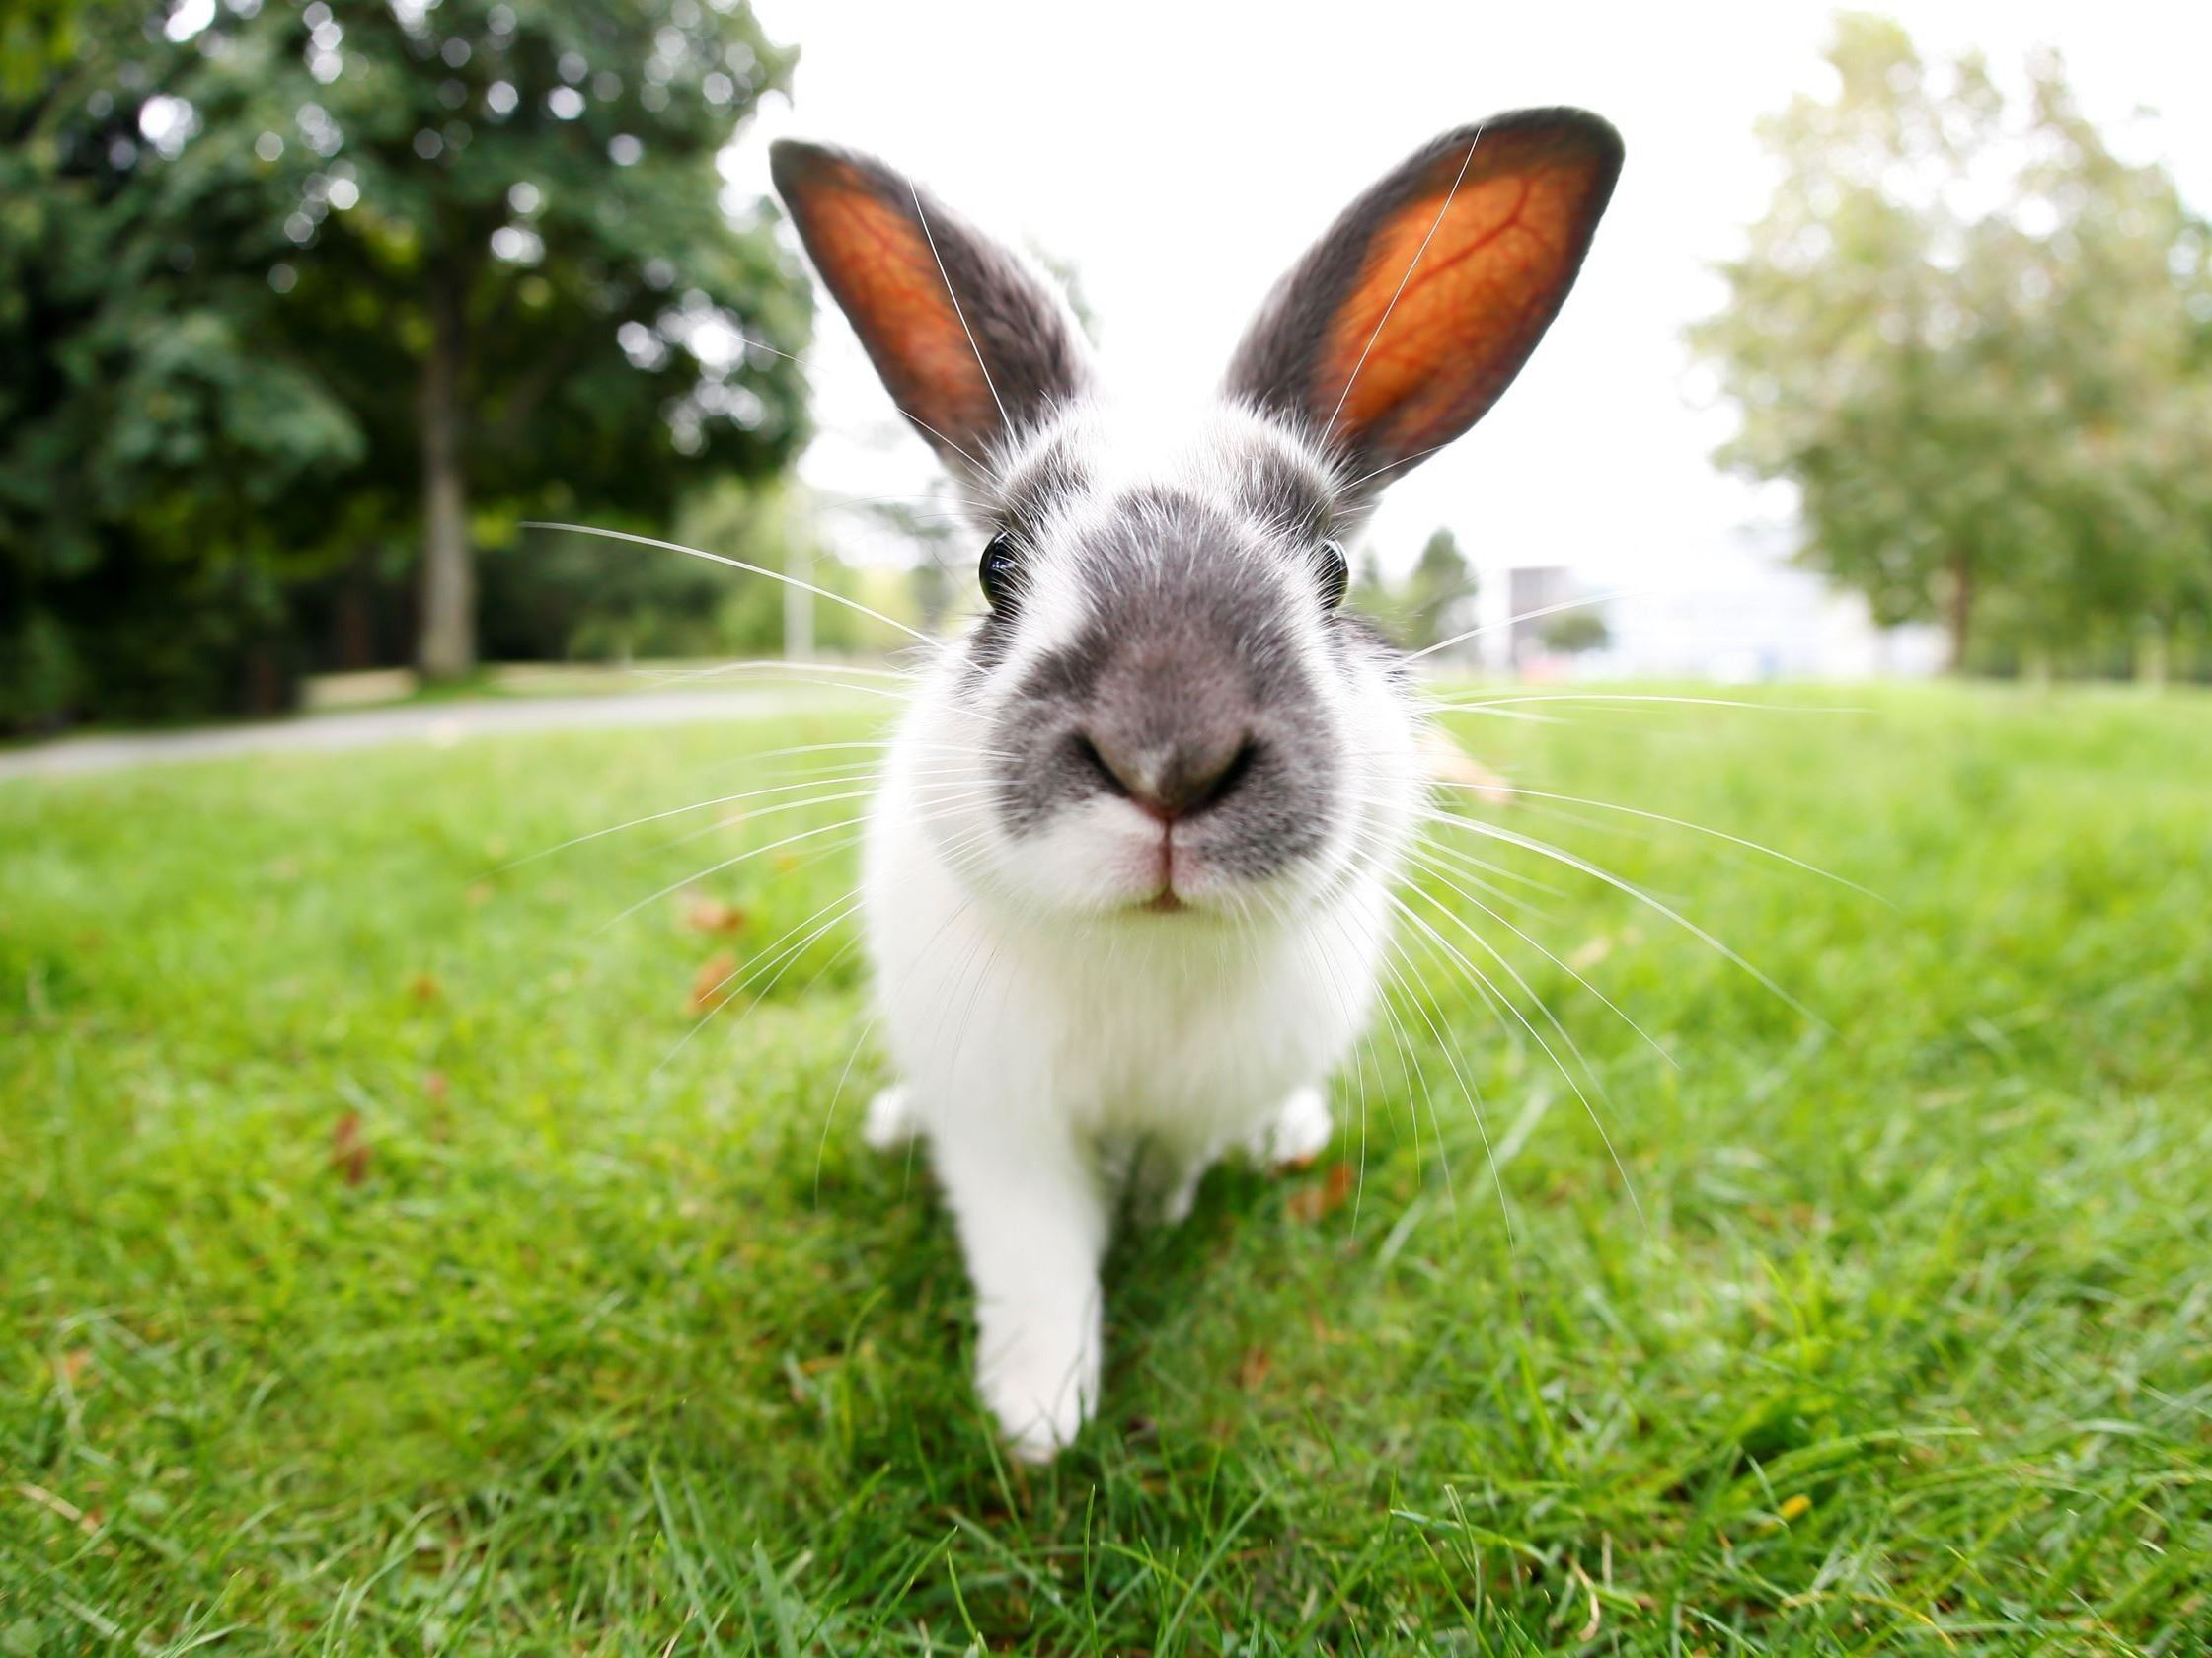 Rabbit outside on grass